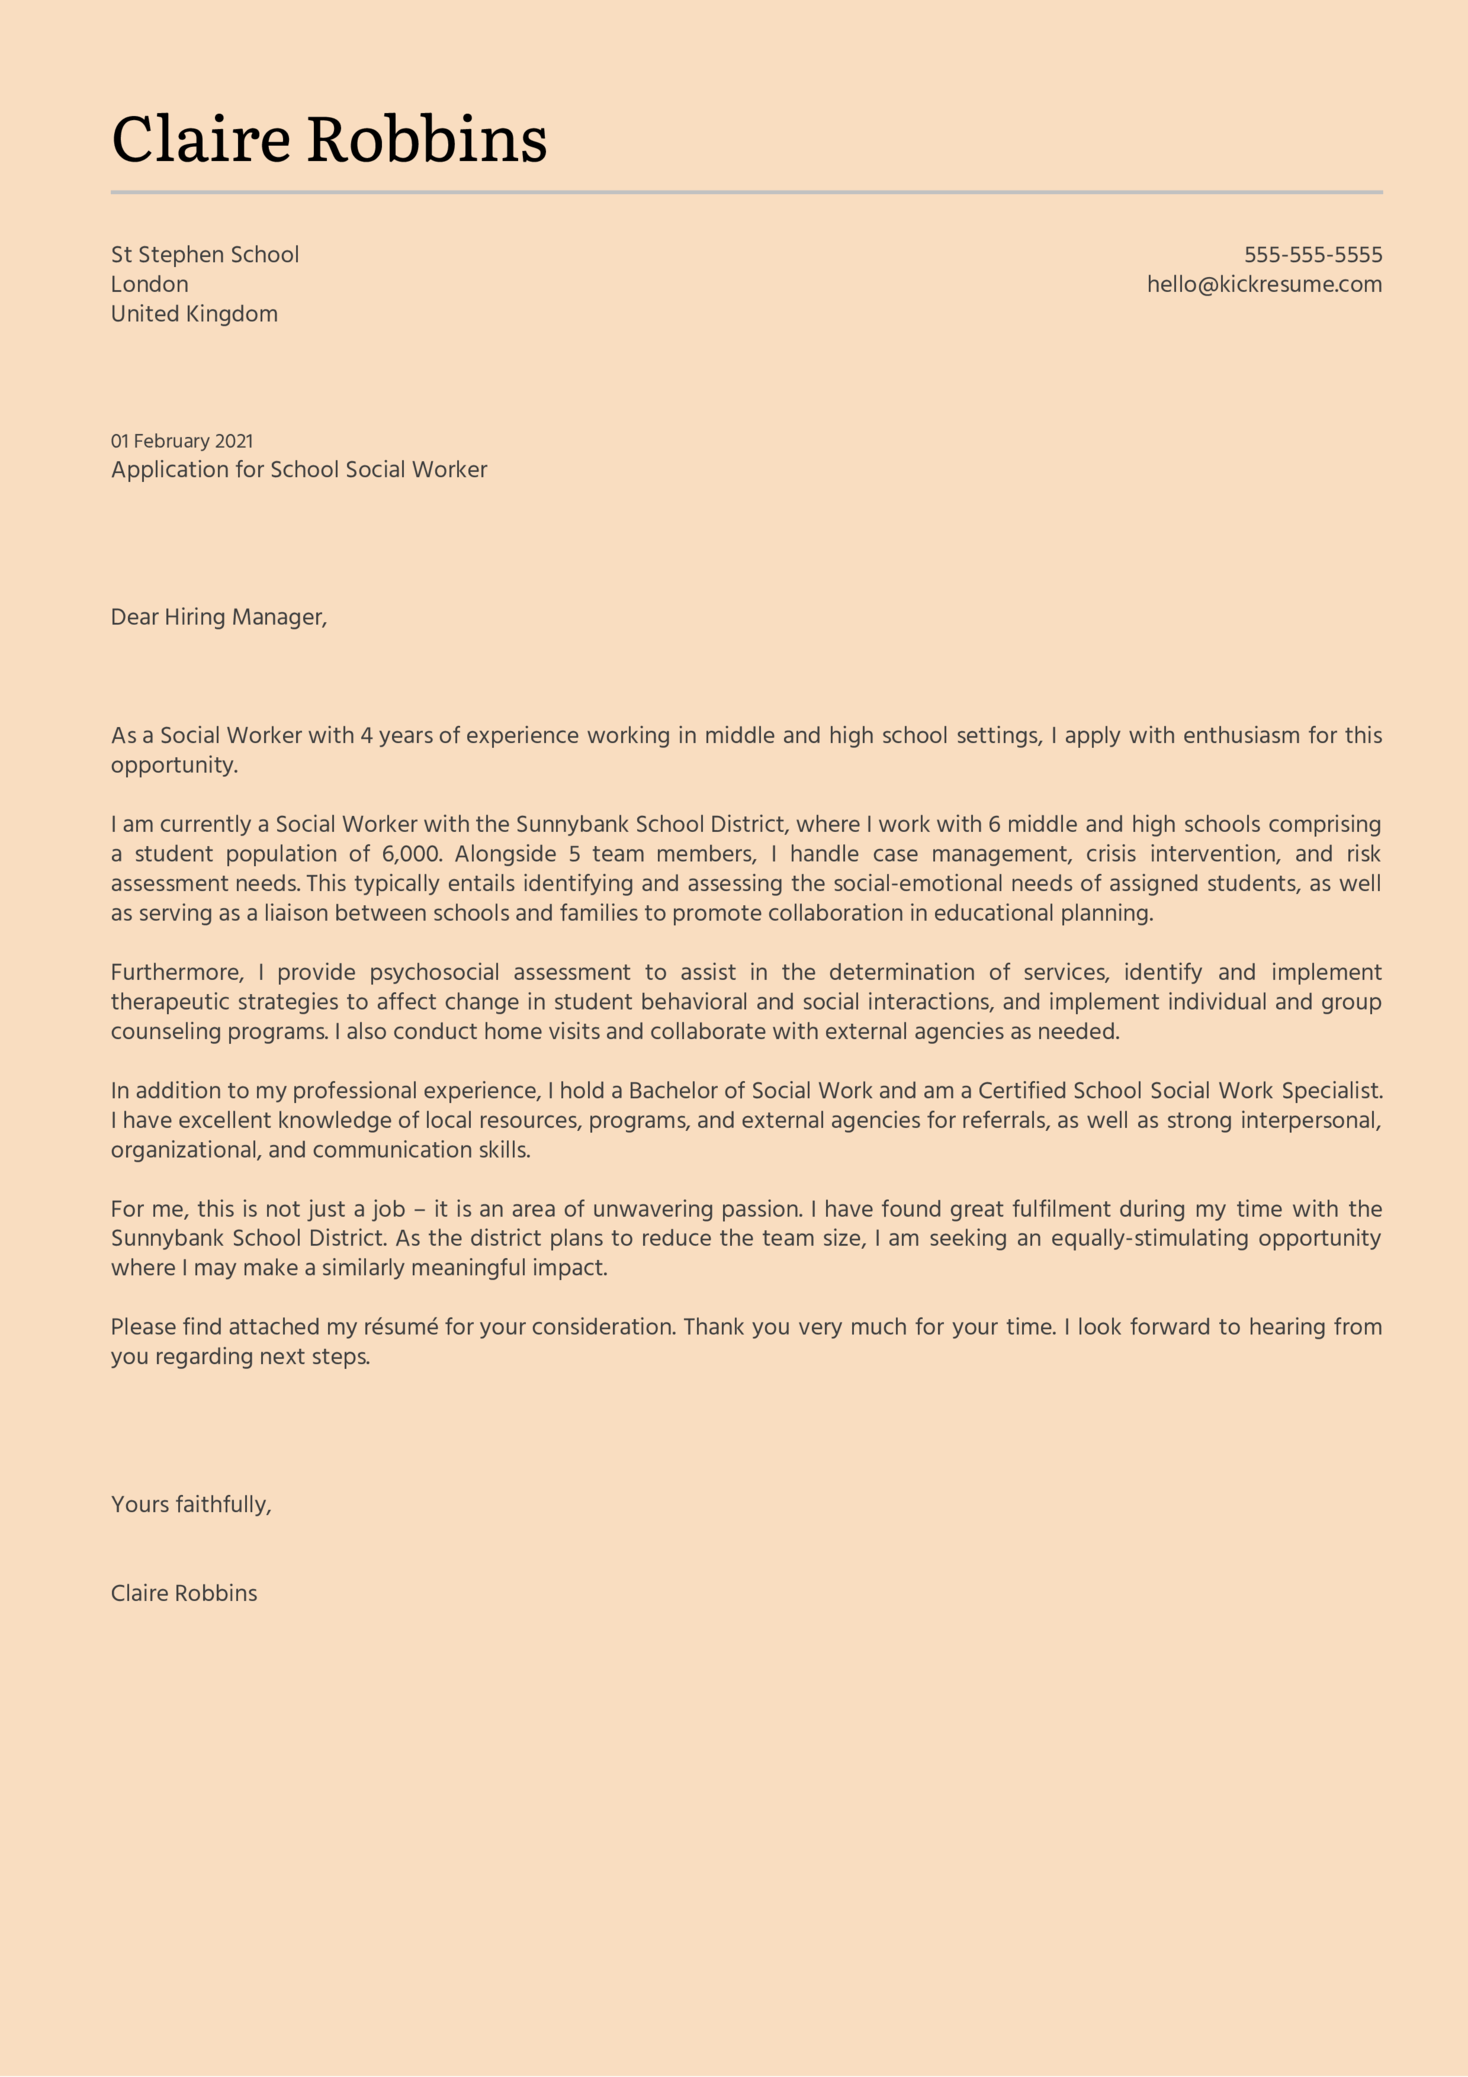 School Social Worker Cover Letter Template